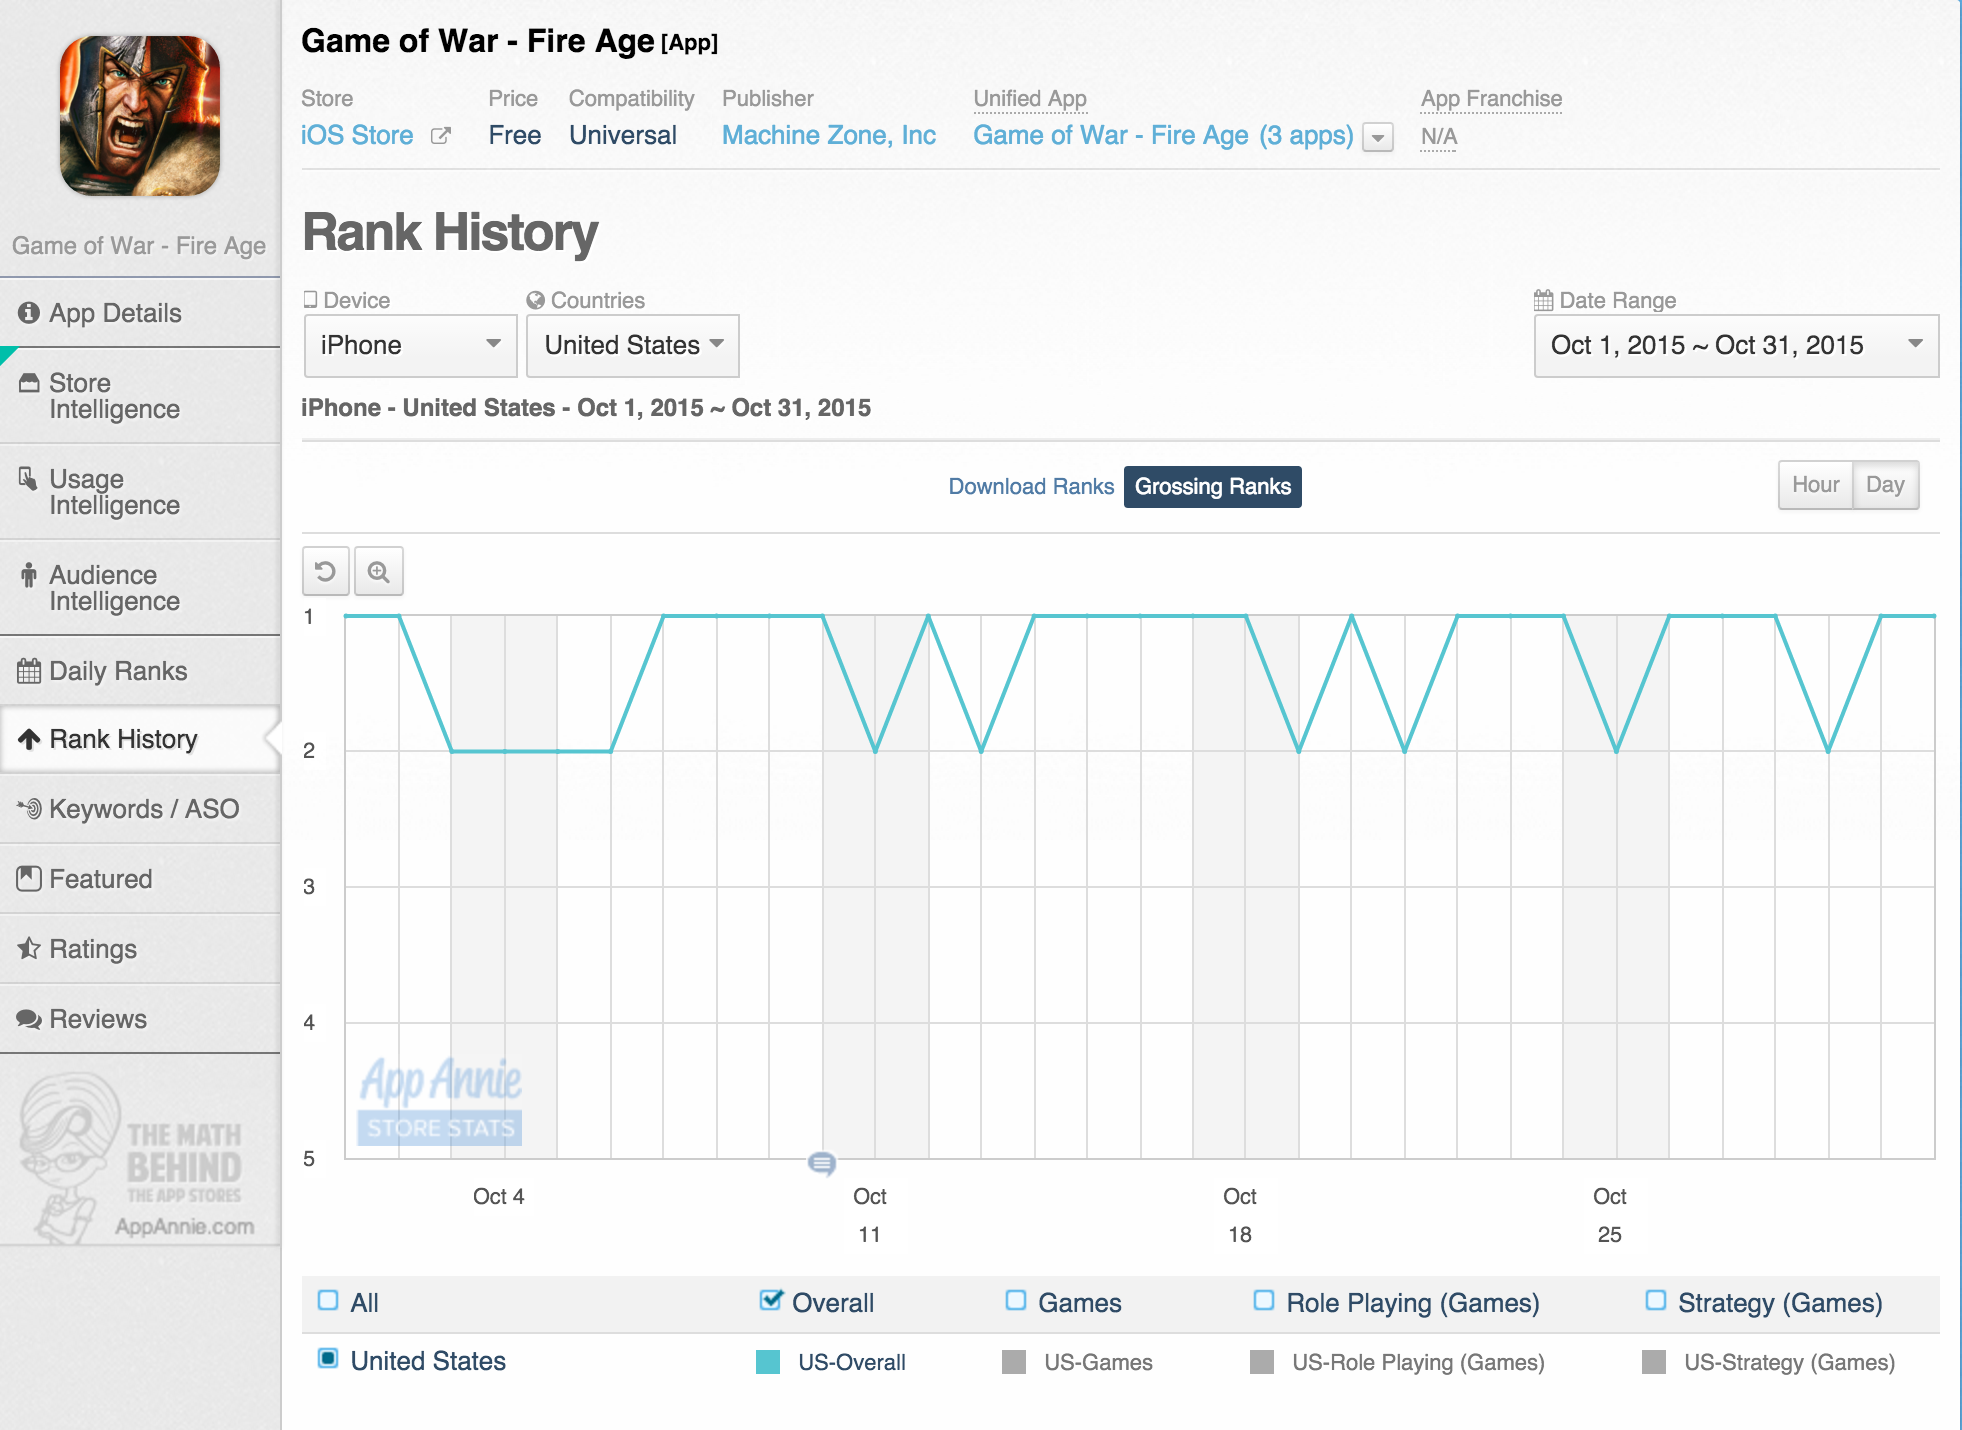 Game of War Fire Age Rank History